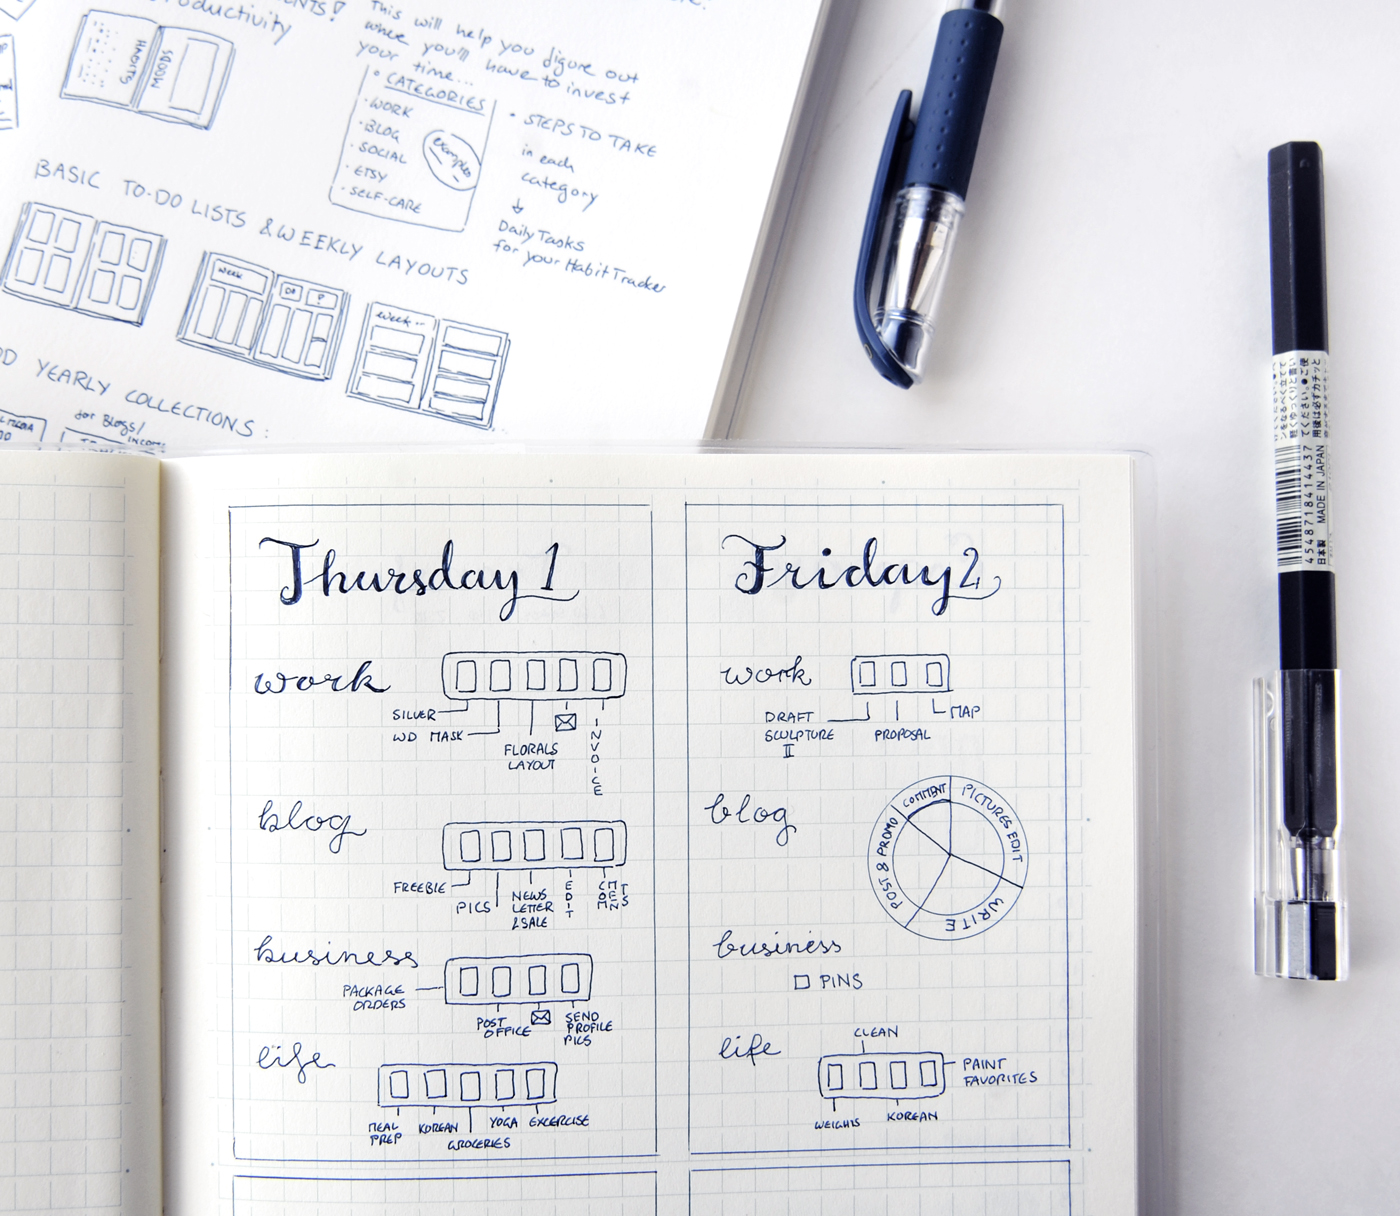 If you just want to plan your days...  The most important part of a bullet journal is, for me, the daily to-do list.  Since the bullet journal system is completely customisable to your personal needs, I like playing around with these!  I really enjoy breaking down my days into different categories. For the first four days of February, those were:  Work | Freelance job and commission pieces) - take up most of the time!  Blog | small tasks for future blog posts, freebies, newsletters...)  Business | similar to work, but more focused on projects where I'm my own boss - from Etsy shipments to new products that I sell here in Korea. And, of course, painting!)  Life | Personal development, exercise, social stuff, housework - all those random bits go here!